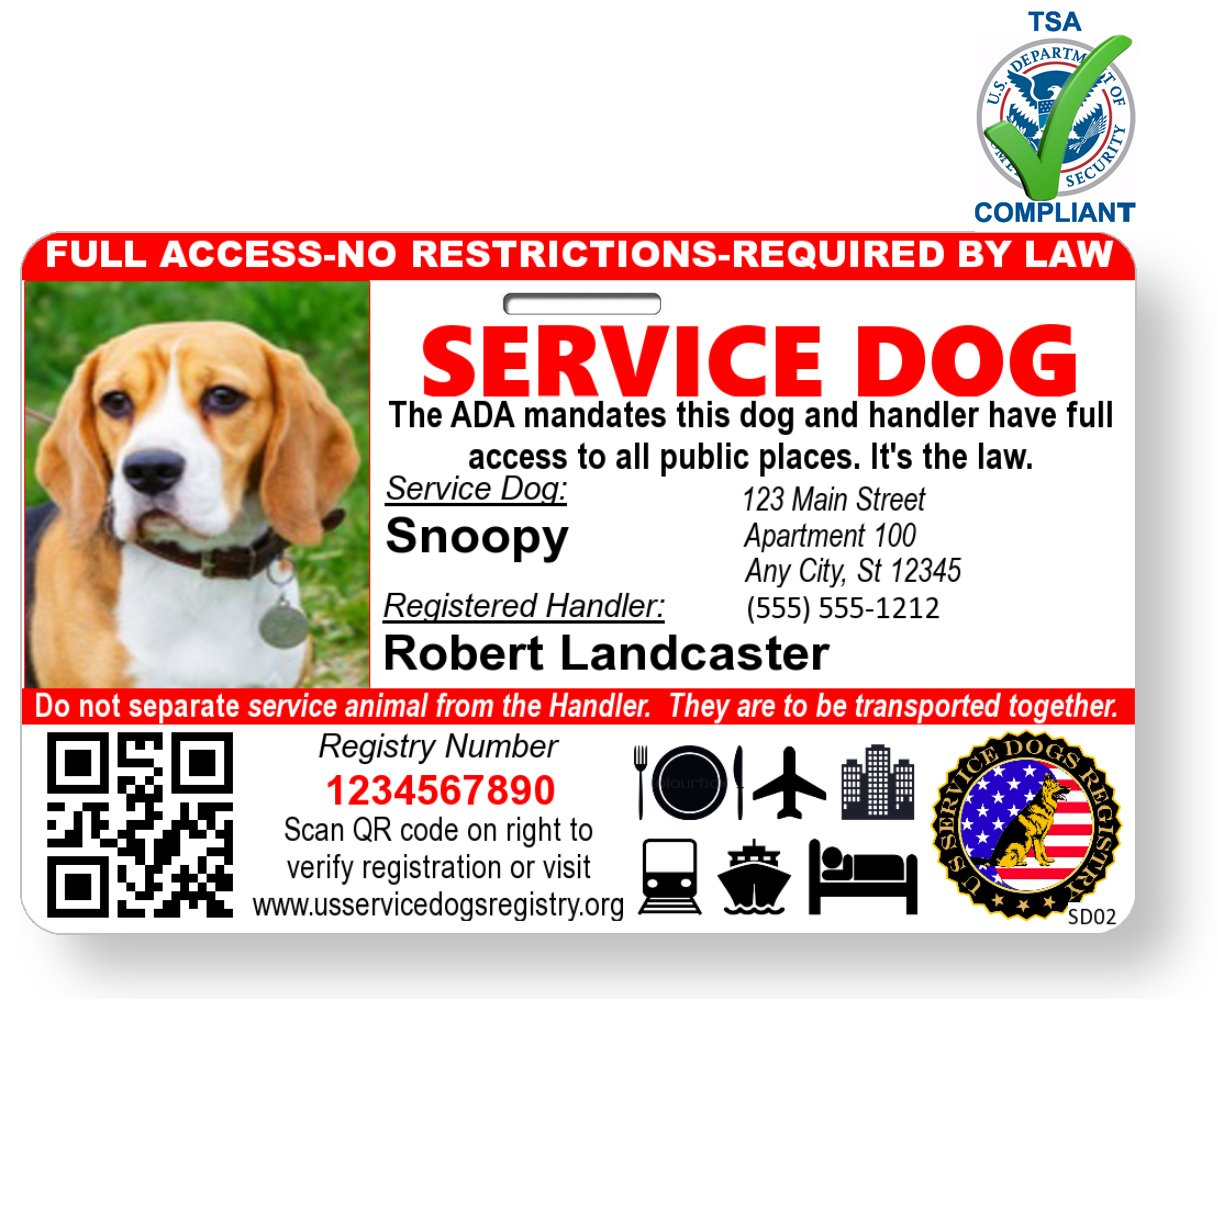 Just 4 Paws Custom Holographic QR Code Service Dog ID Card with Registration to Service Dogs Registry with Strap - Landscape Style